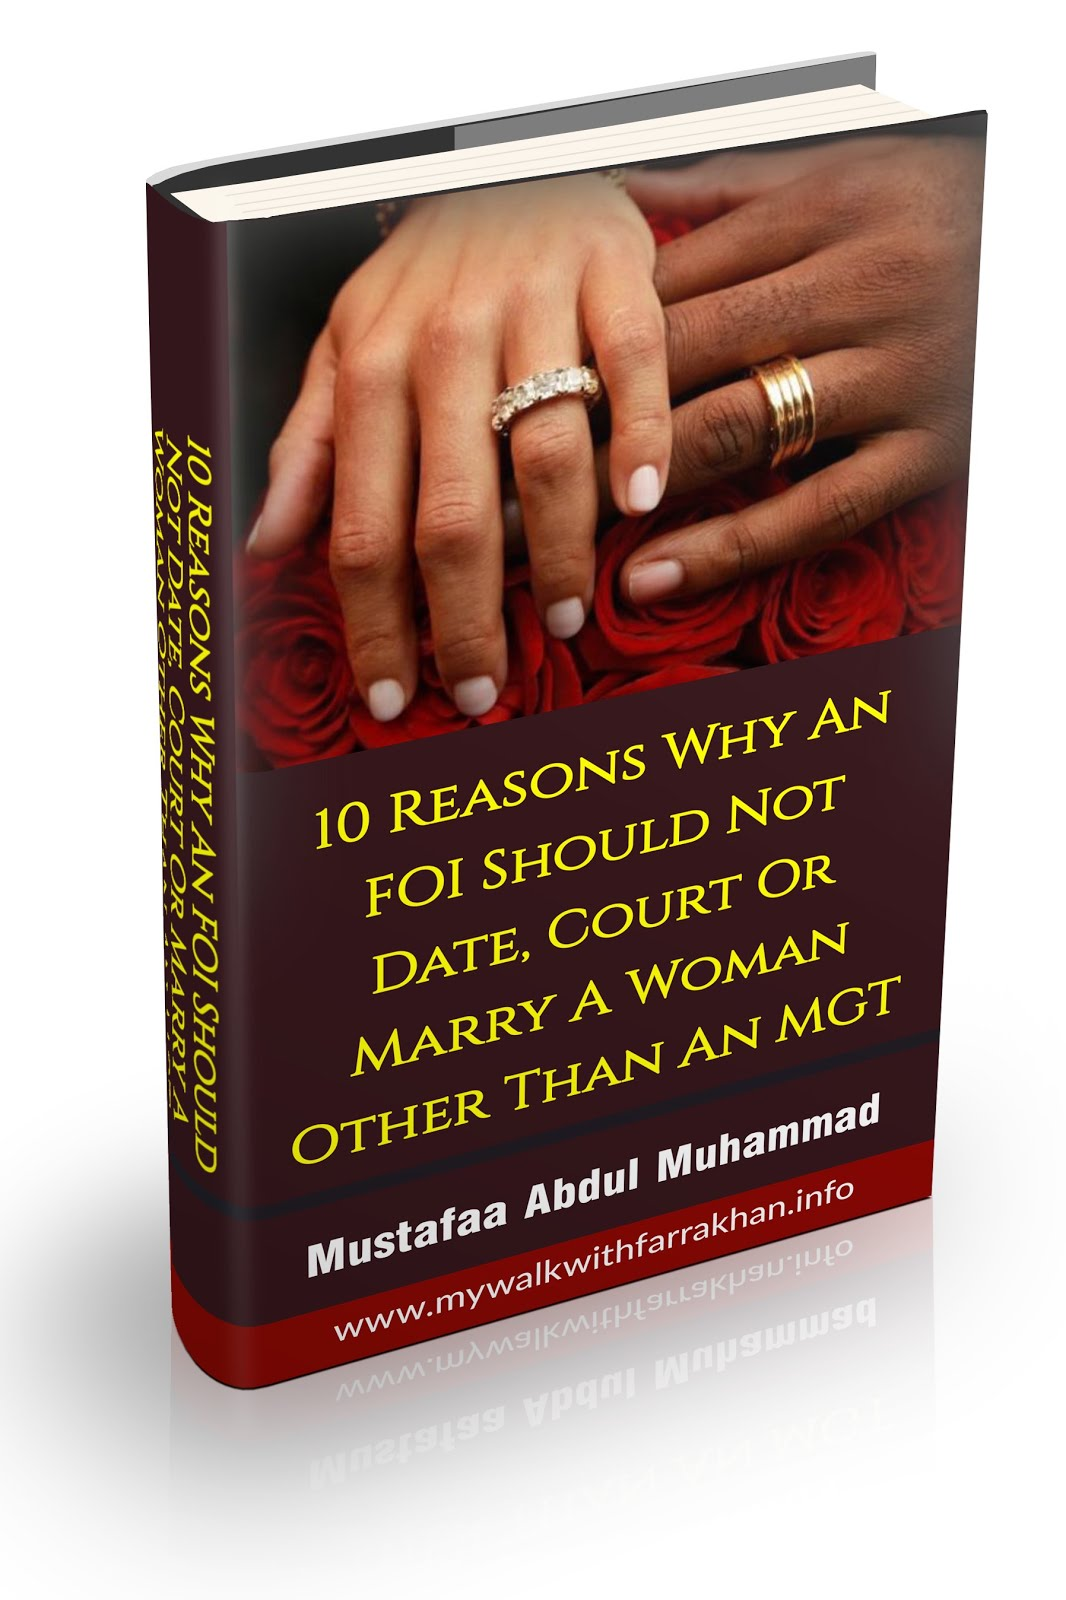 10 Reasons Why An FOI Should Not Date, Court Or Marry A Woman Other Than An Mgt